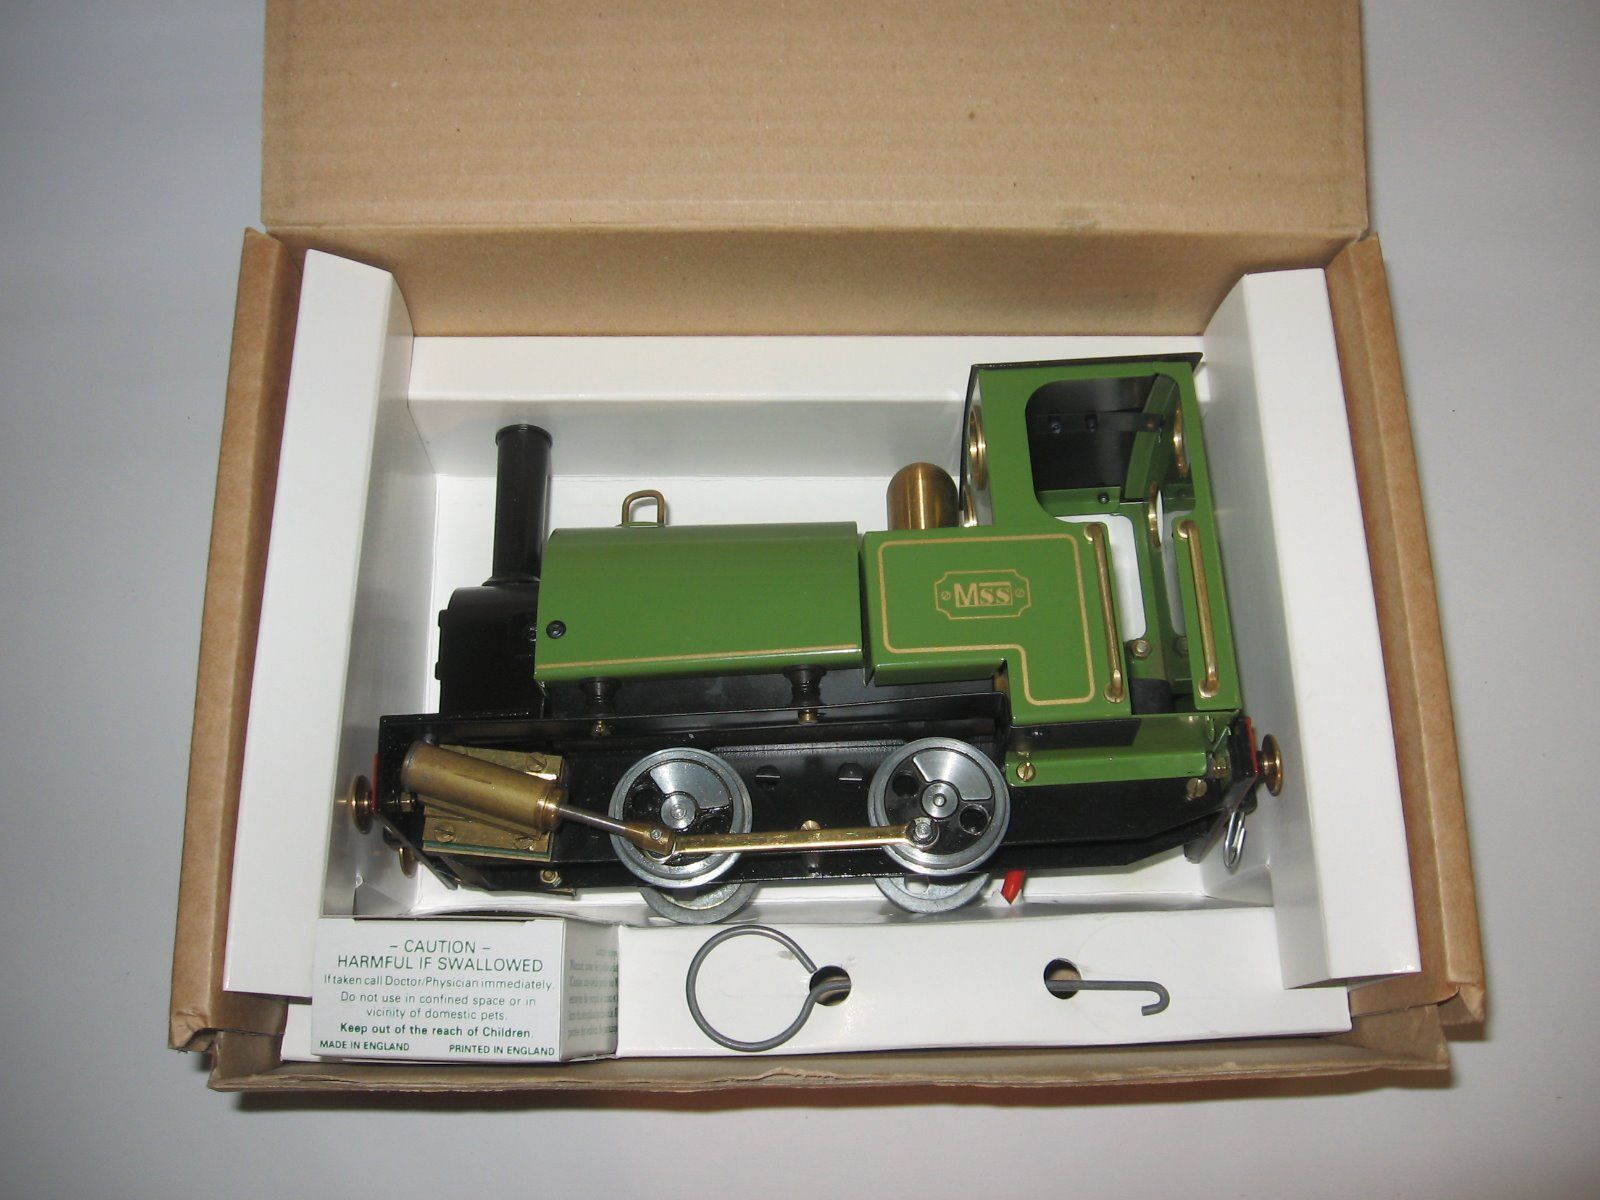 The set looks quite new and well looked after. The locomotive comes in its original box, check with the seller about the wagons also.